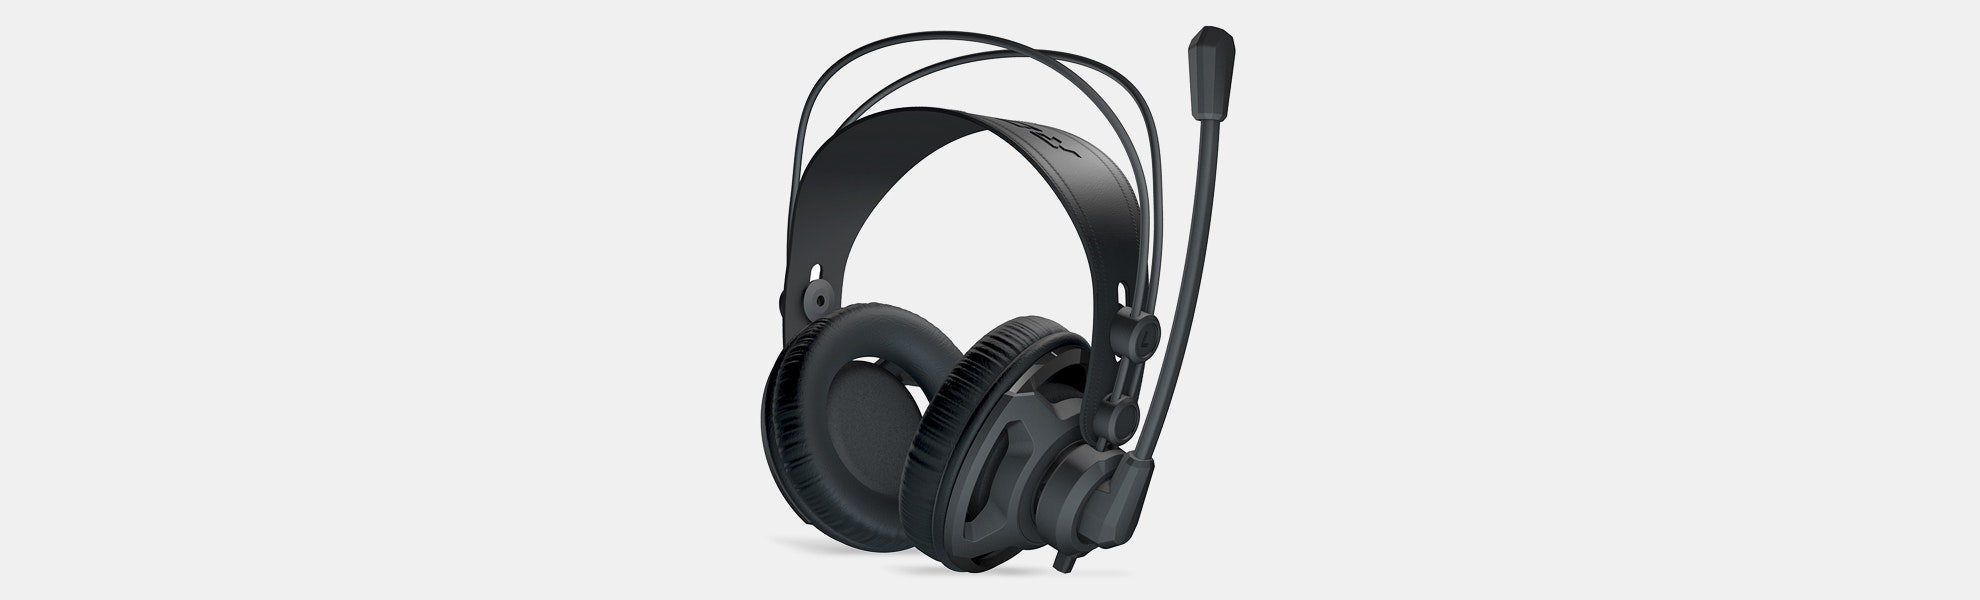 Roccat Regna Boost Performance Gaming Headset